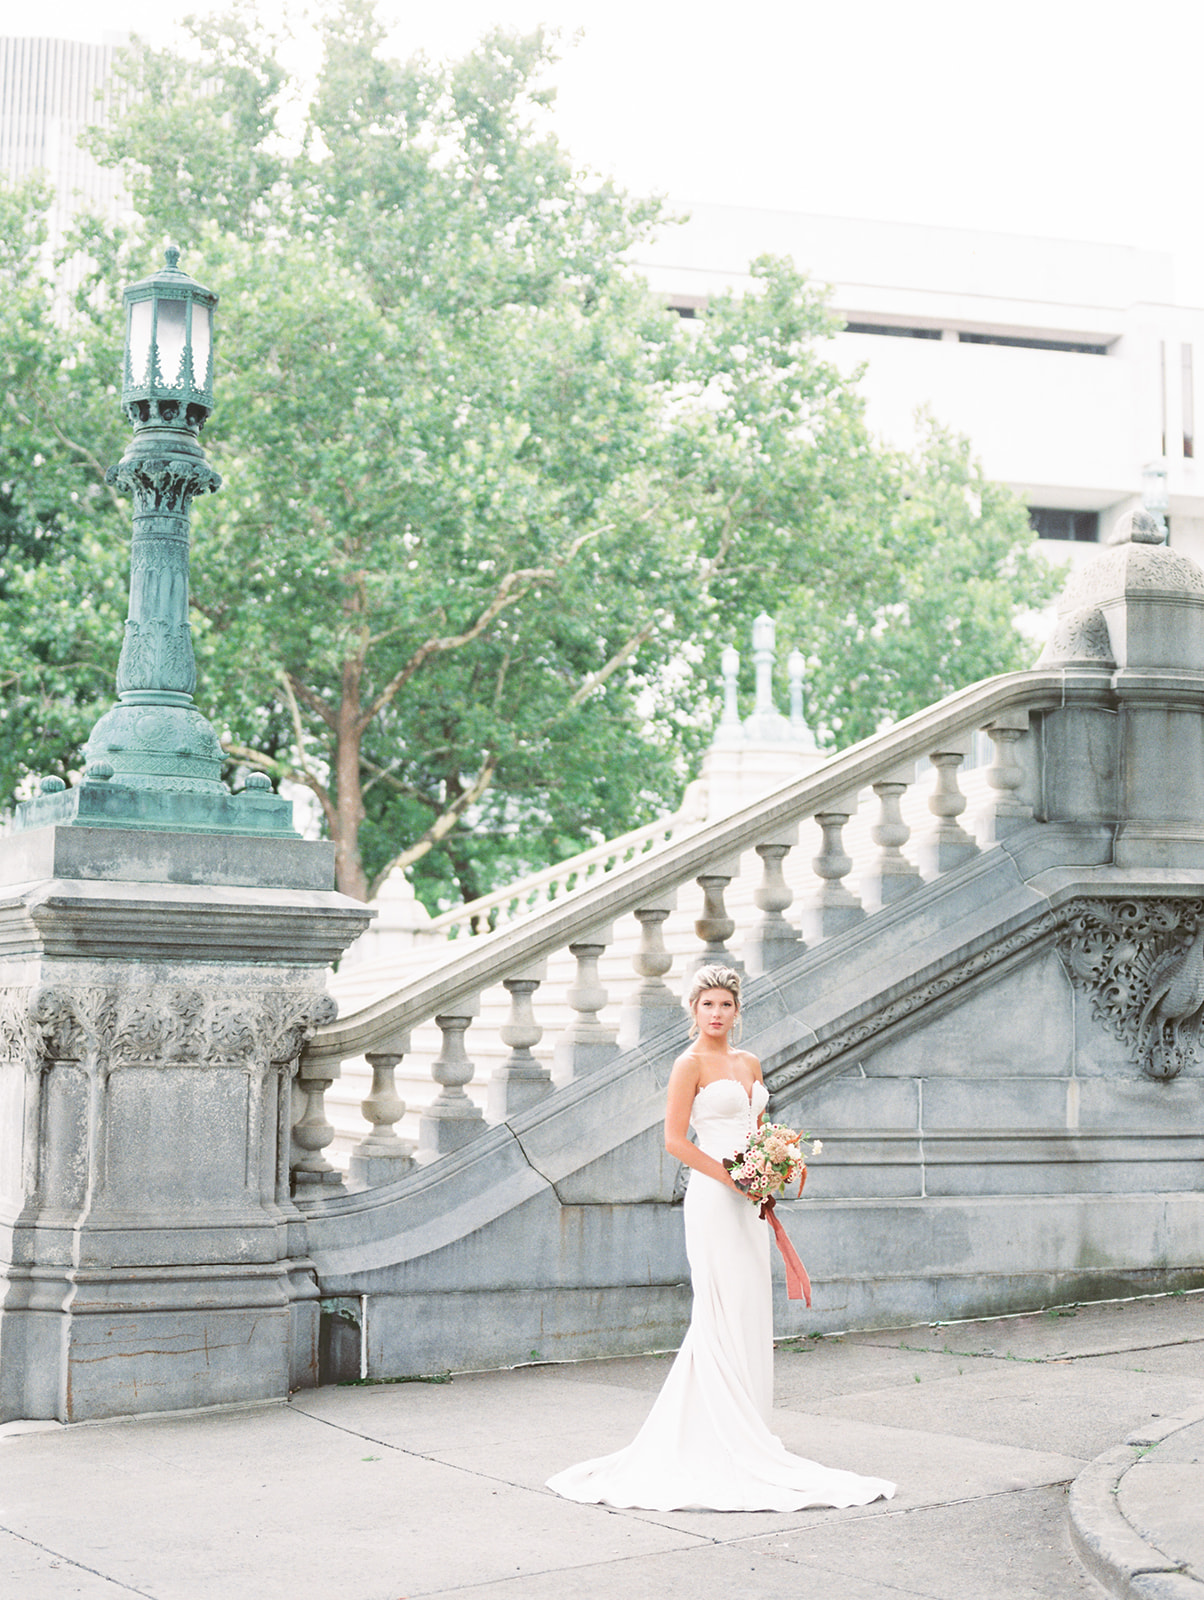 July Editorial with Angela_s Bridal by Michelle Lange Photography-92.jpg